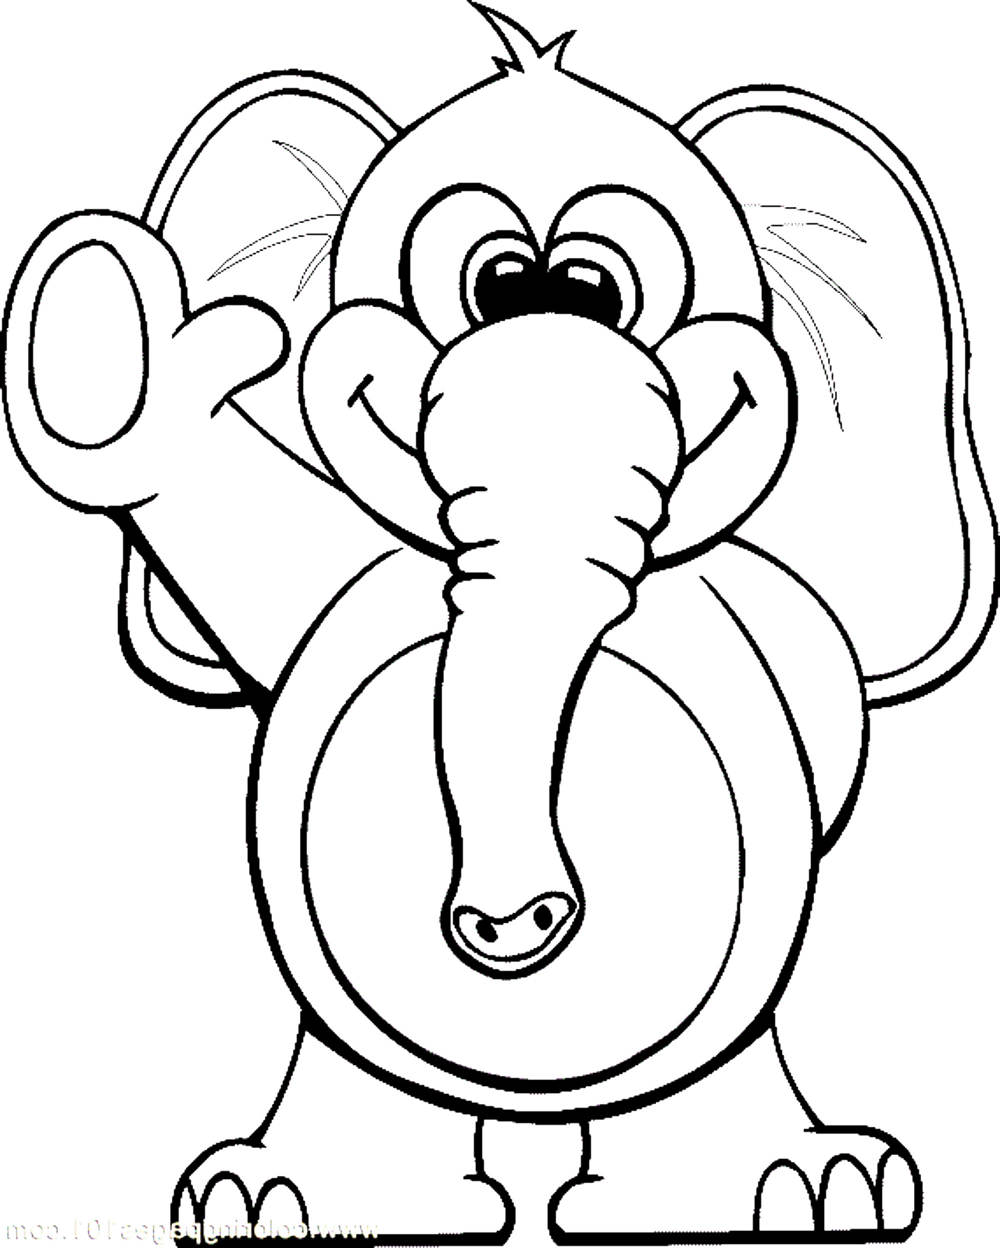 elephant coloring pages baby elephant coloring pages to download and print for free pages coloring elephant